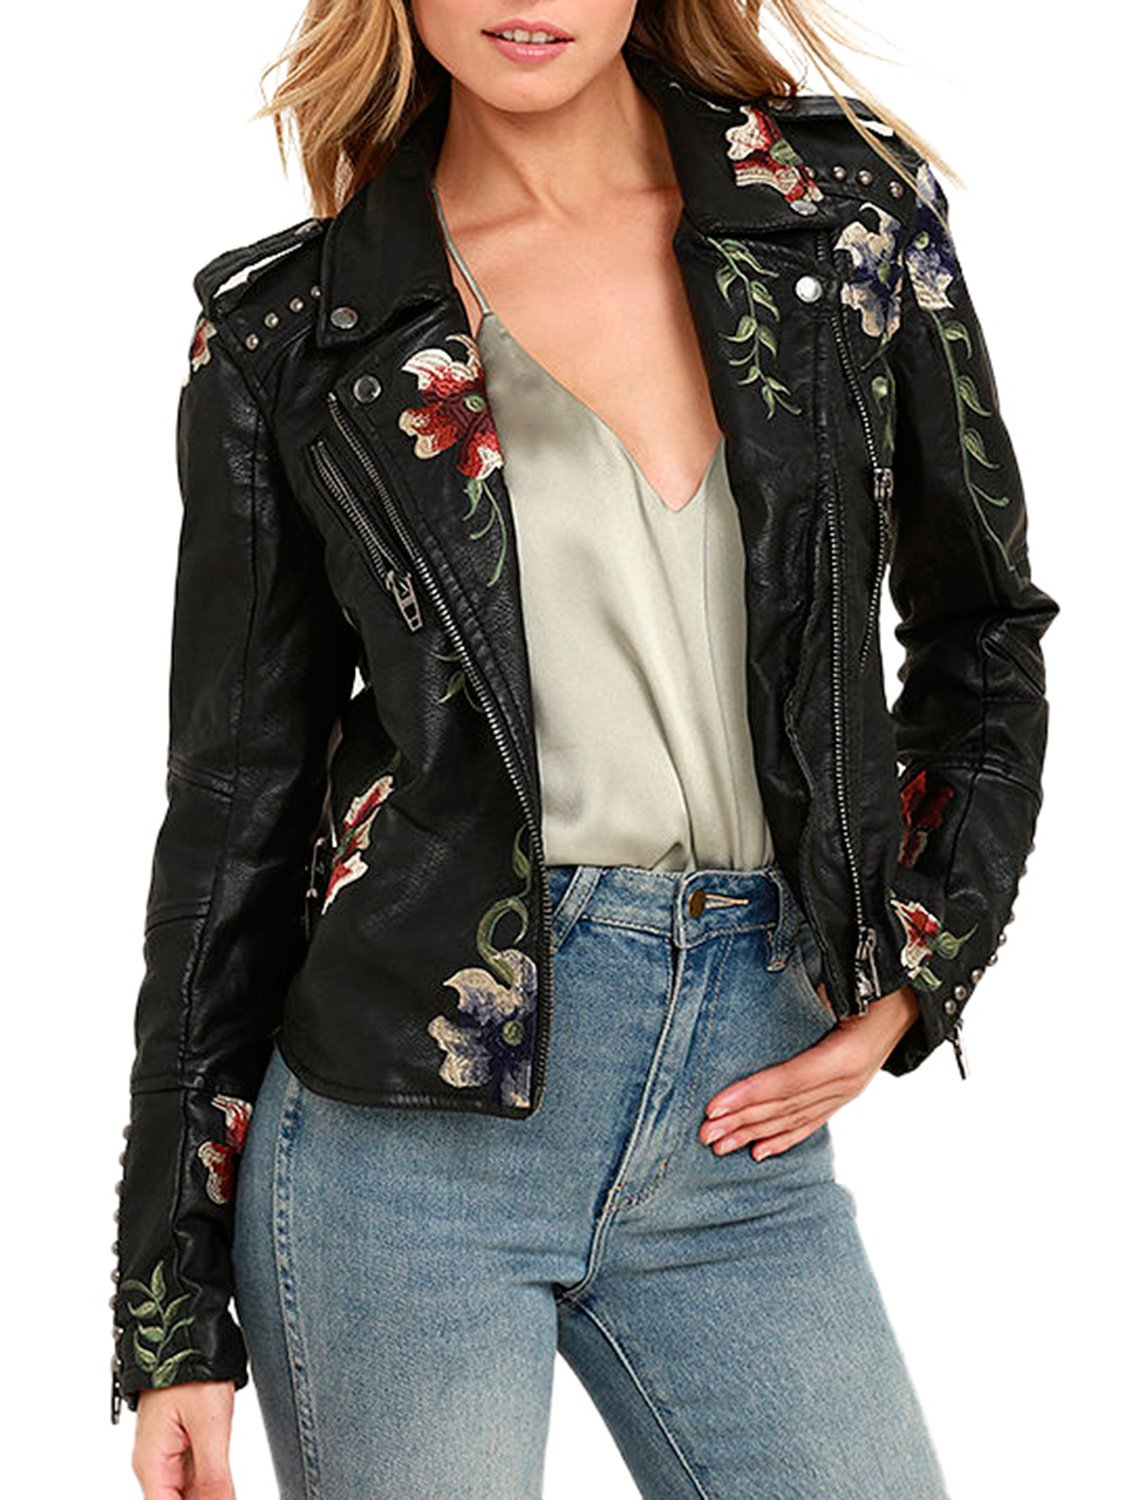 Glamaker Women's Long Sleeves Faux Leather Zipper Jacket Coat Embroidery Floral Pu Leather Outwear (XXL, Black) by Glamaker